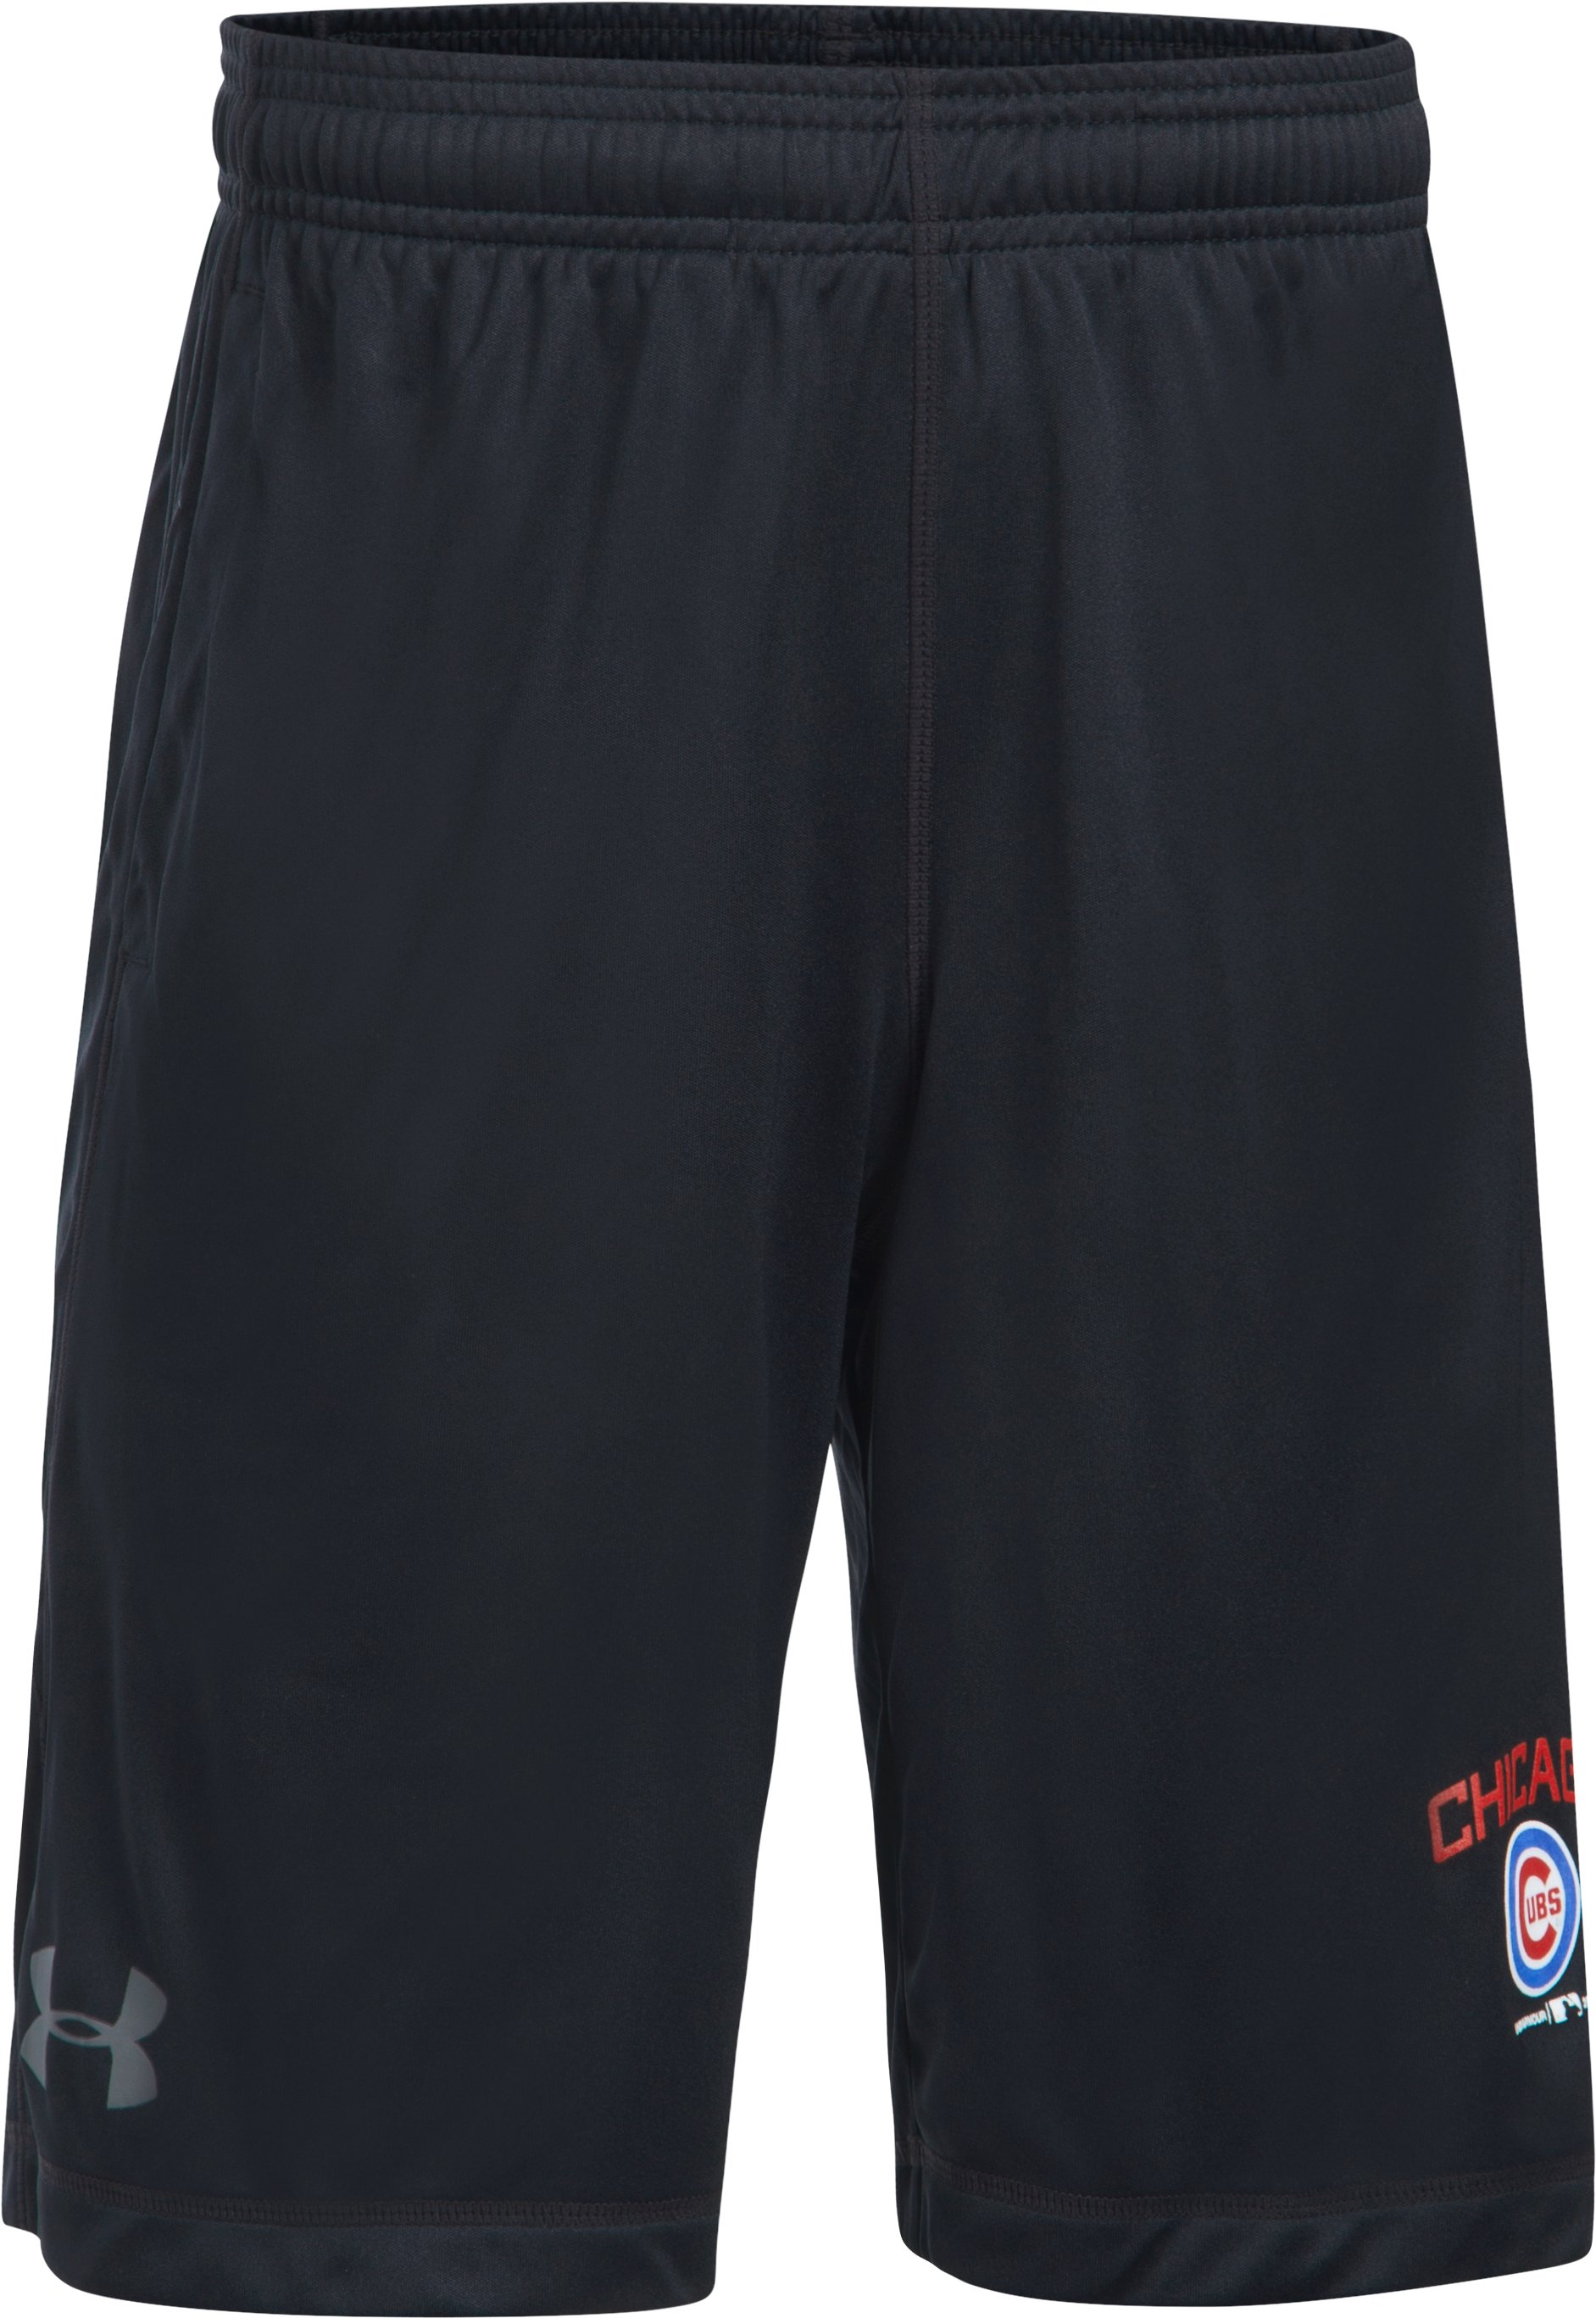 Boys' Chicago Cubs Training Shorts, Black